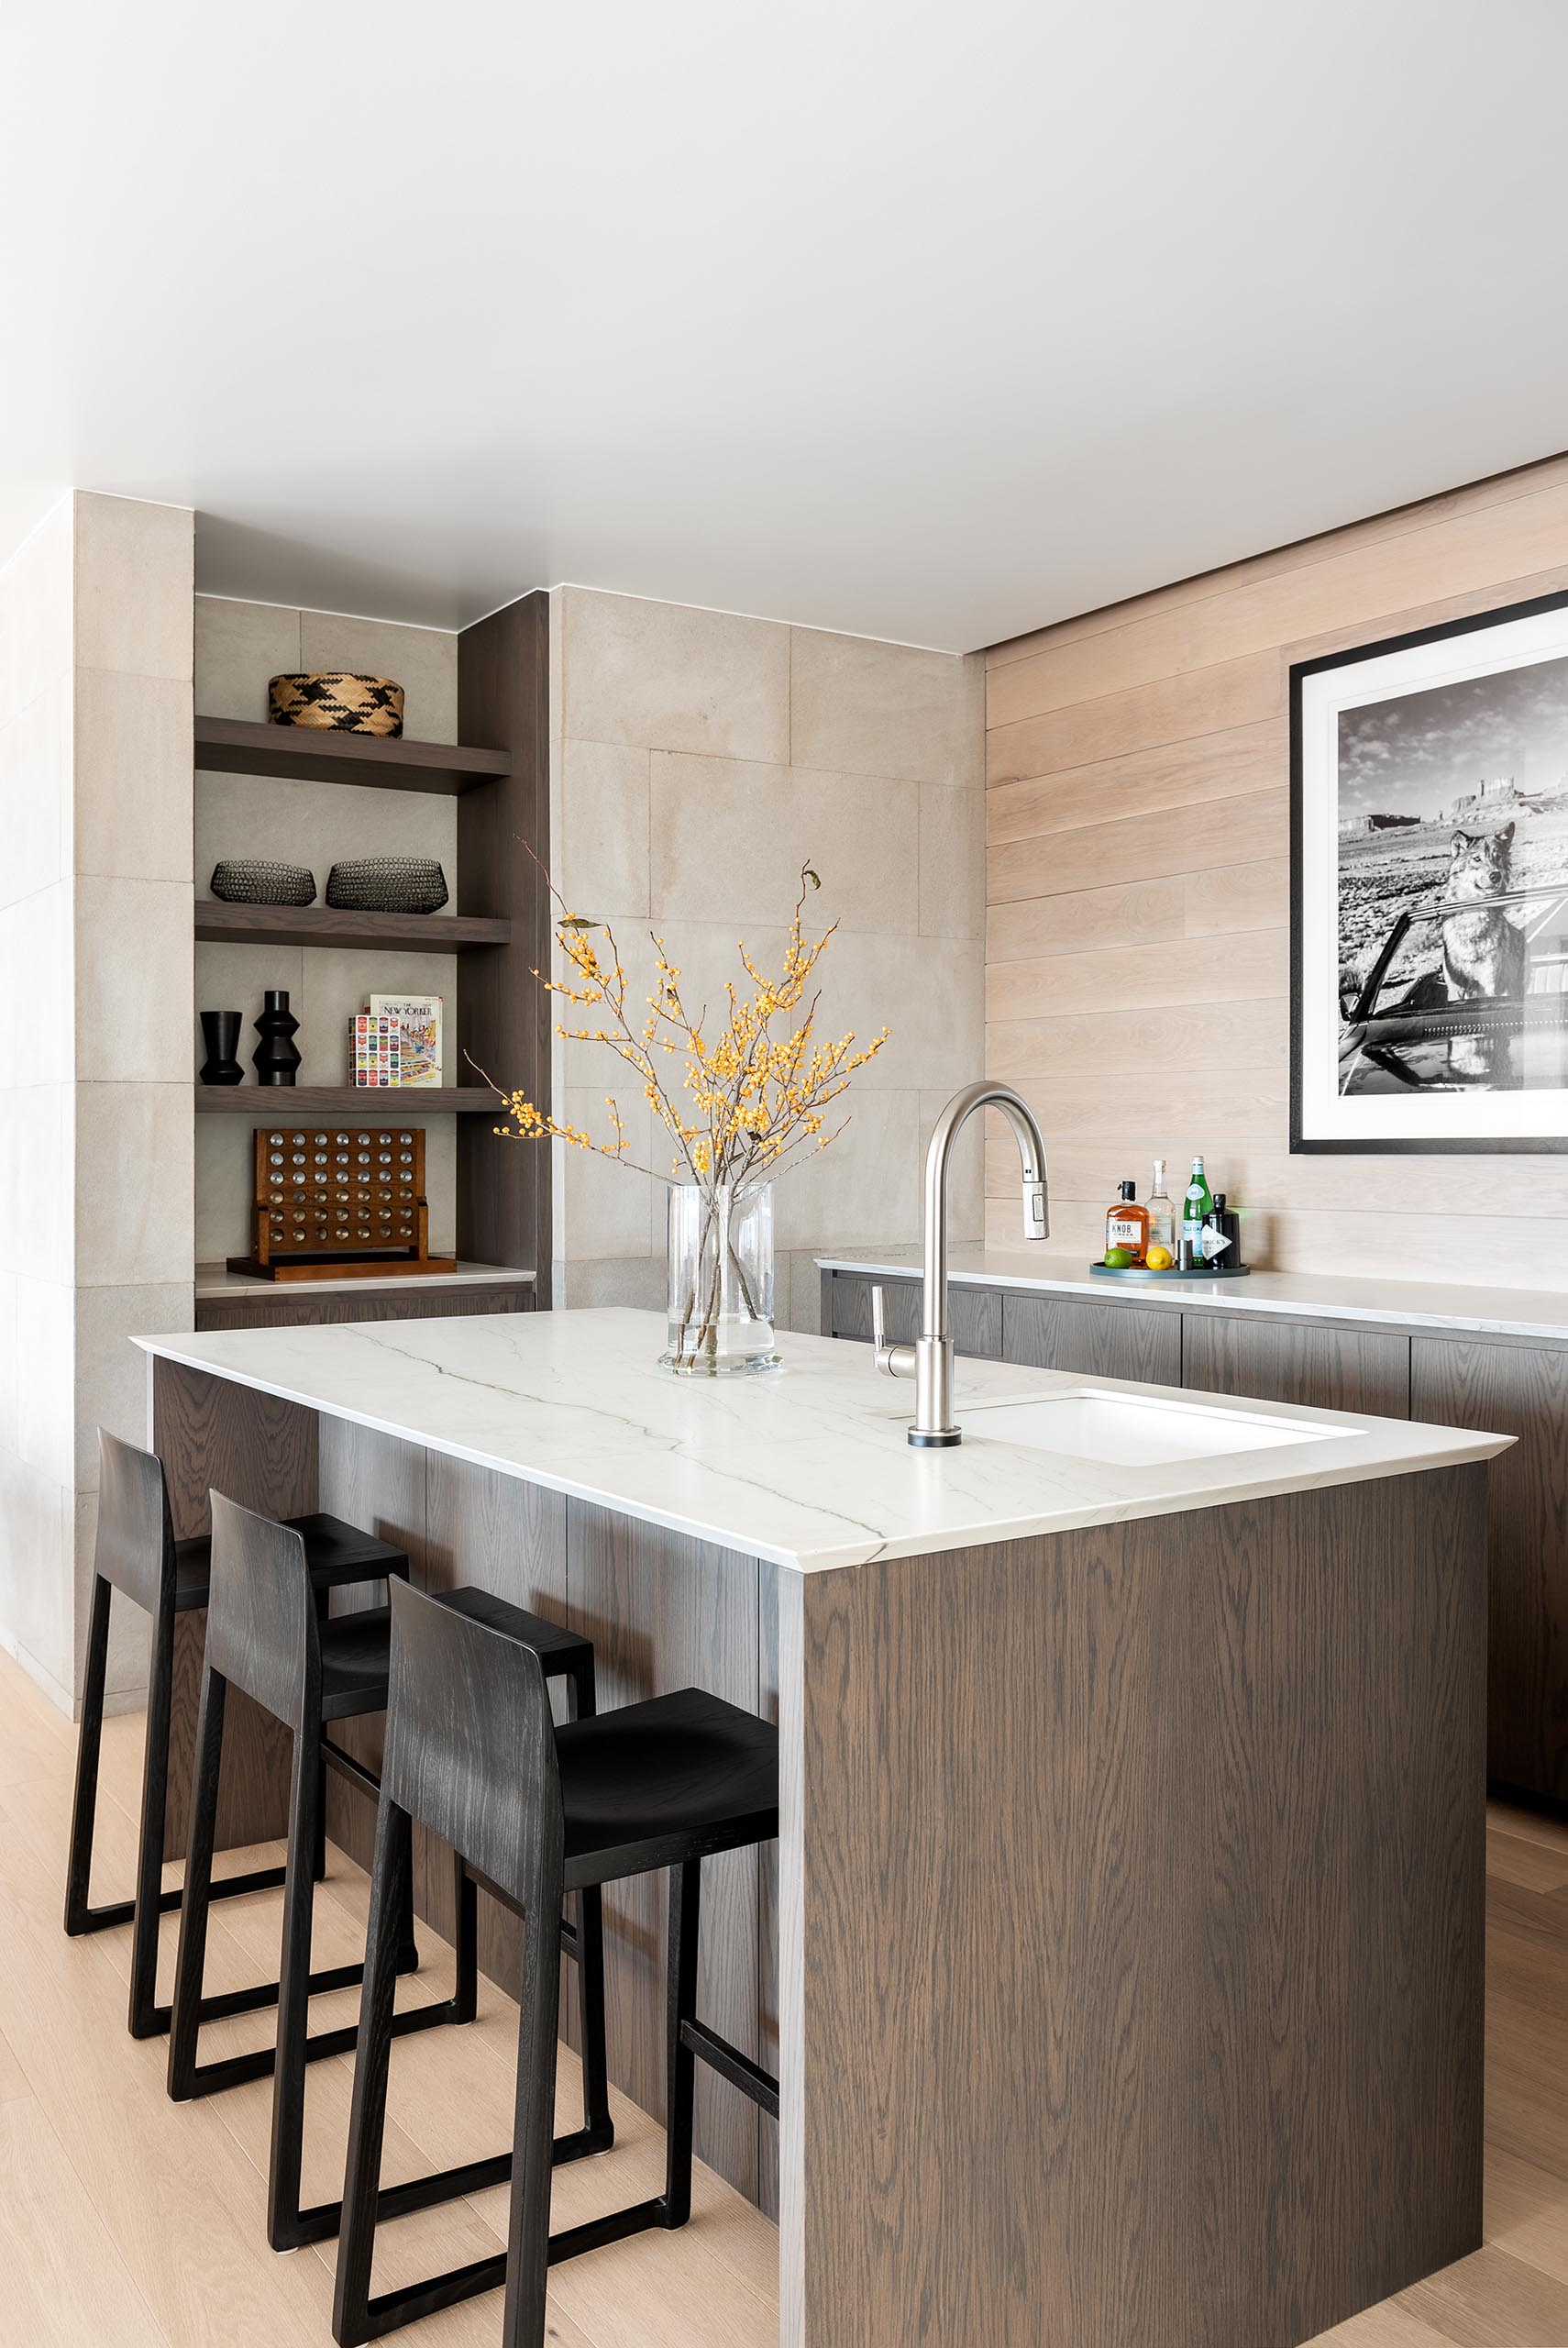 A modern bar with an island, wood cabinets, open shelving, and light colored countertops.